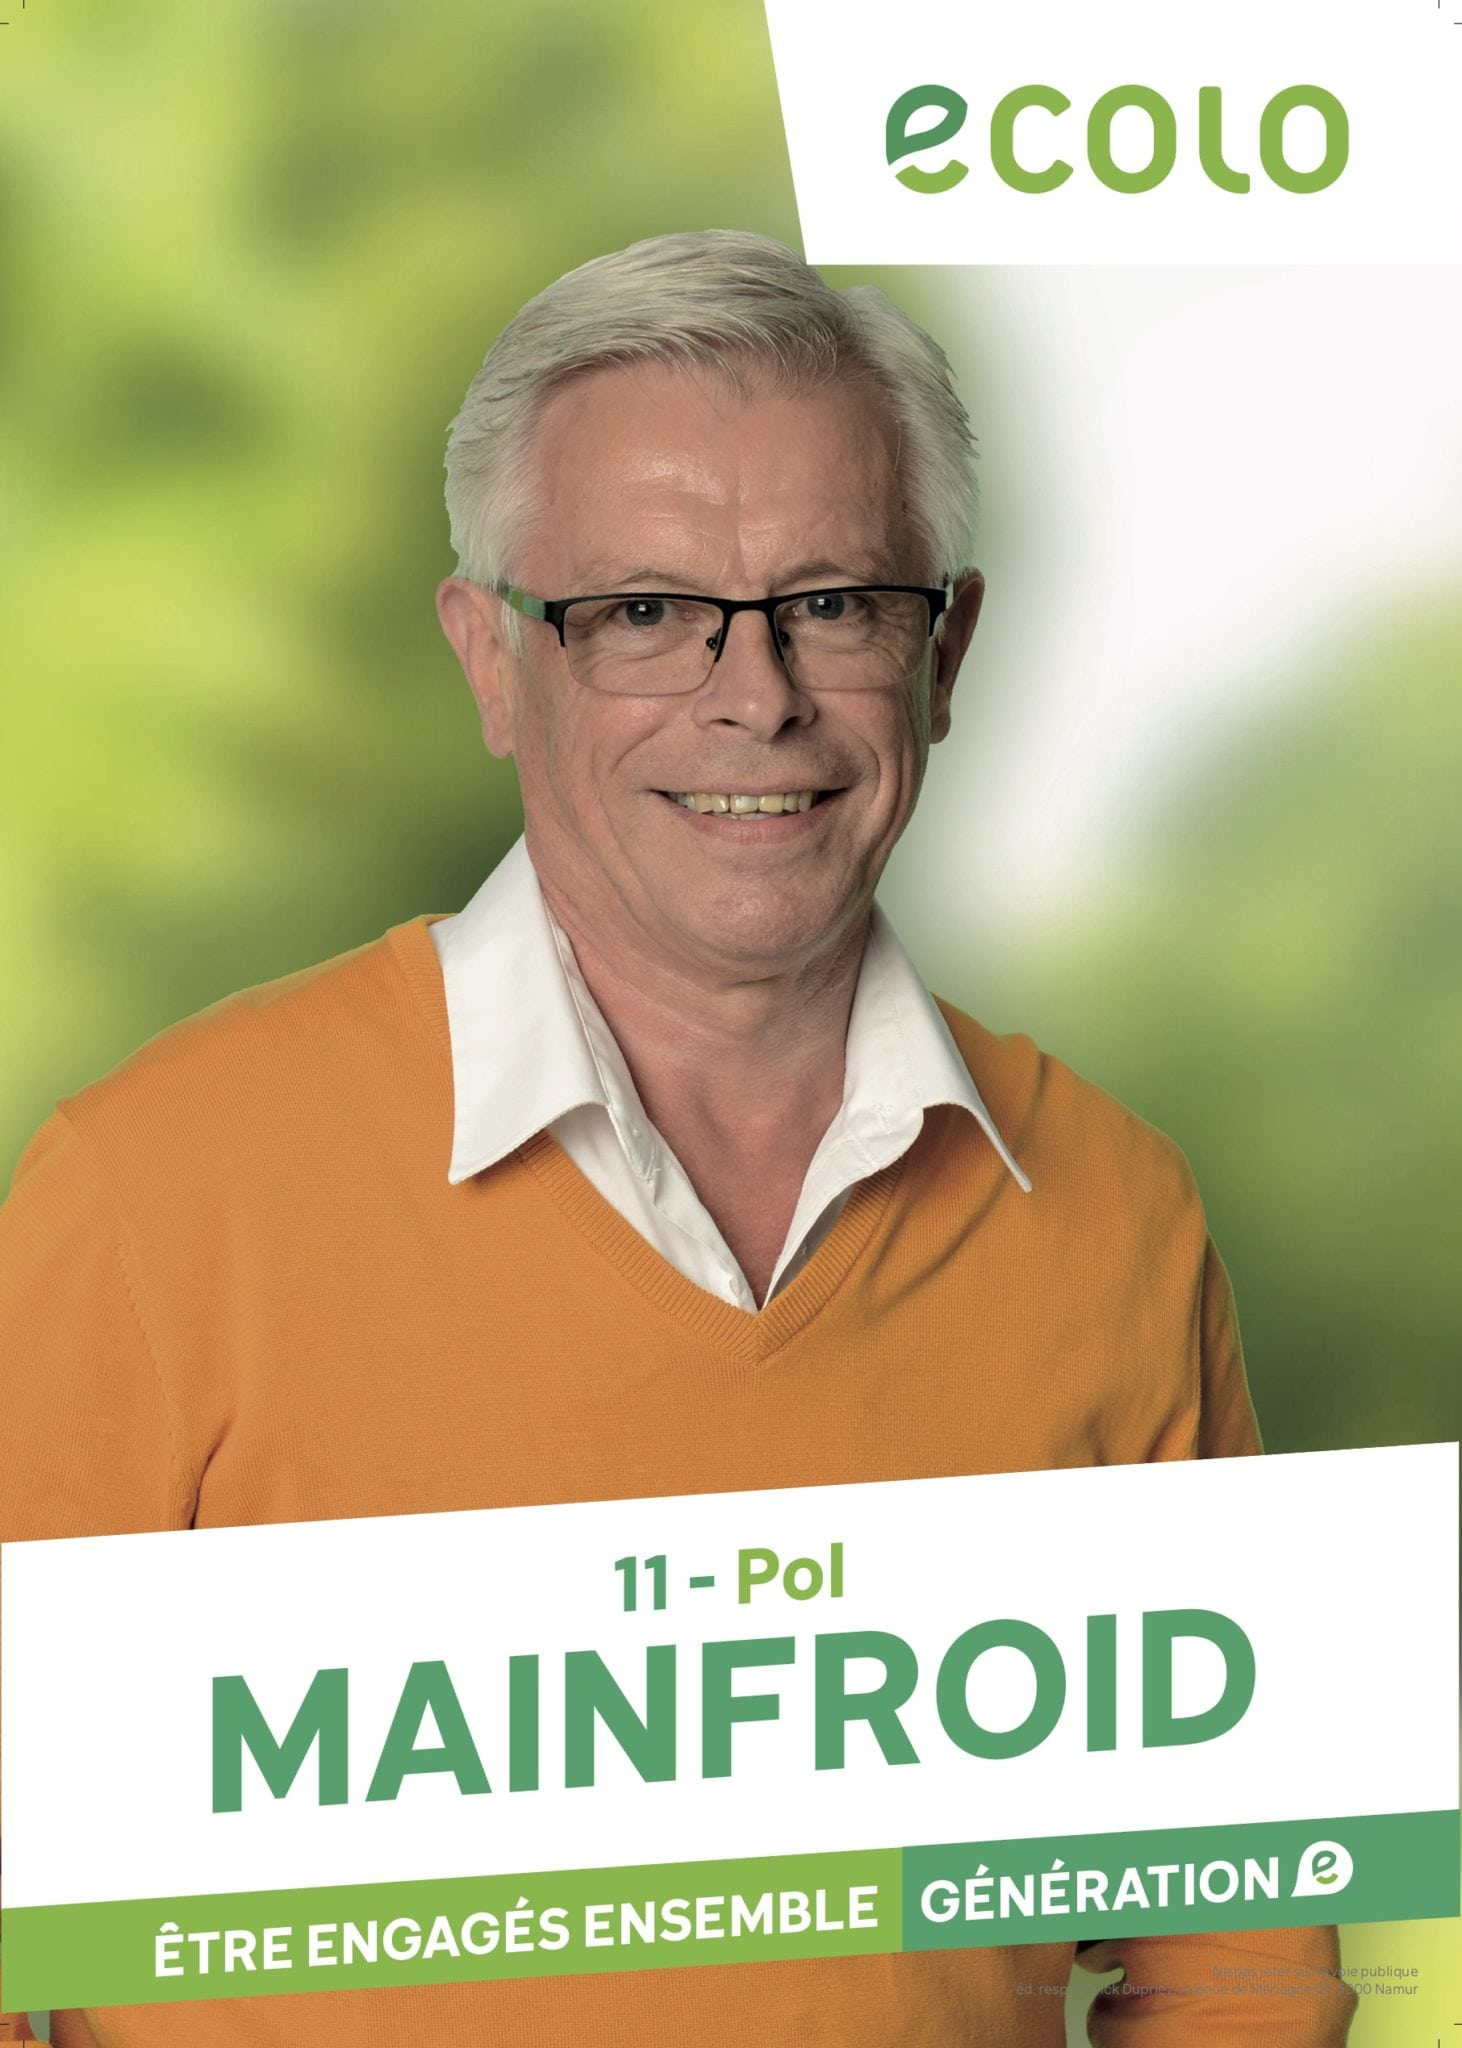 Pol    Mainfroid